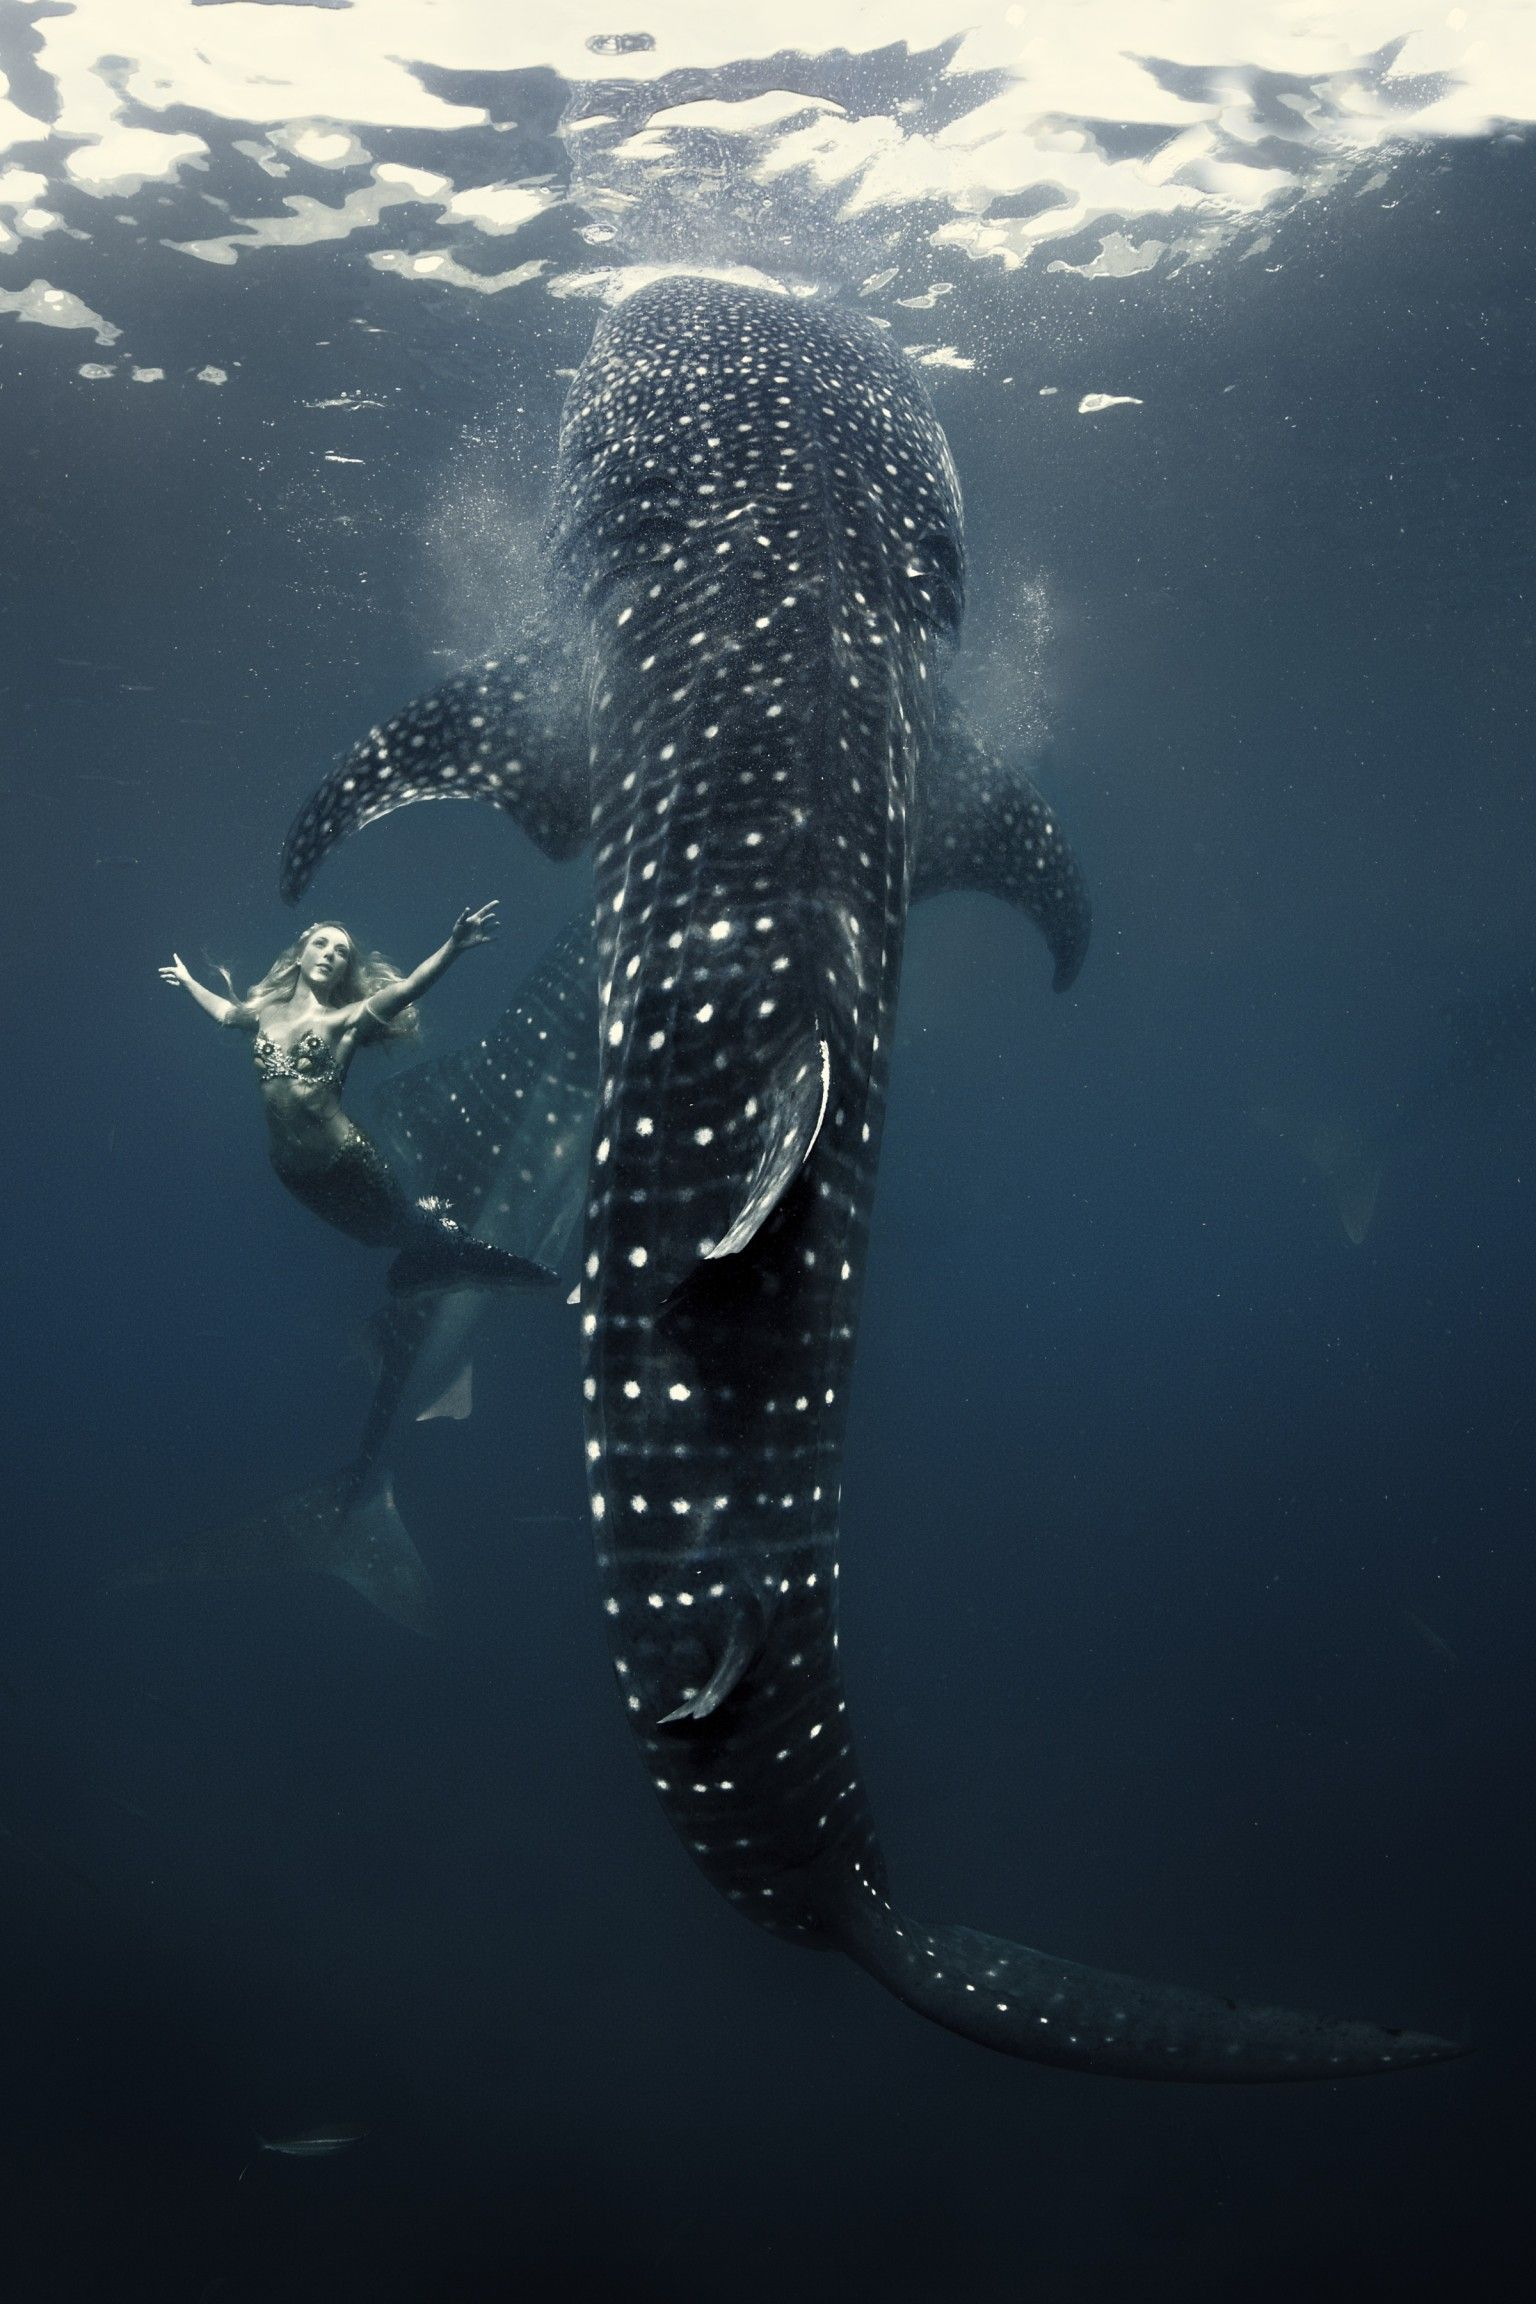 Real Life Mermaid Hannah Fraser With Whale Sharks Photo By Shawn Heinrichs